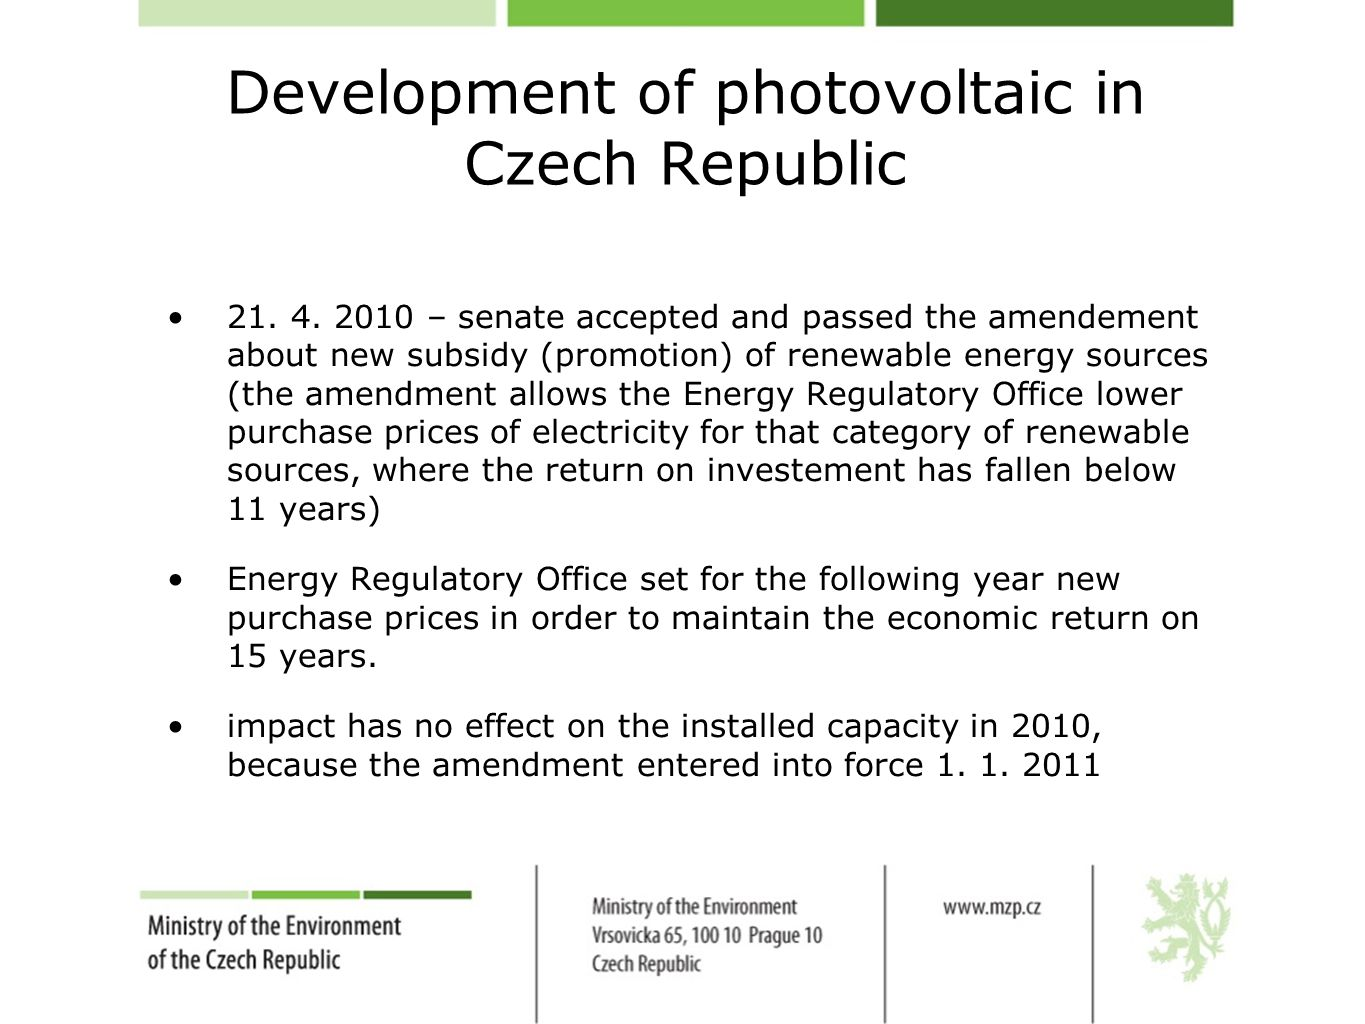 Development of photovoltaic in Czech Republic 21.4.